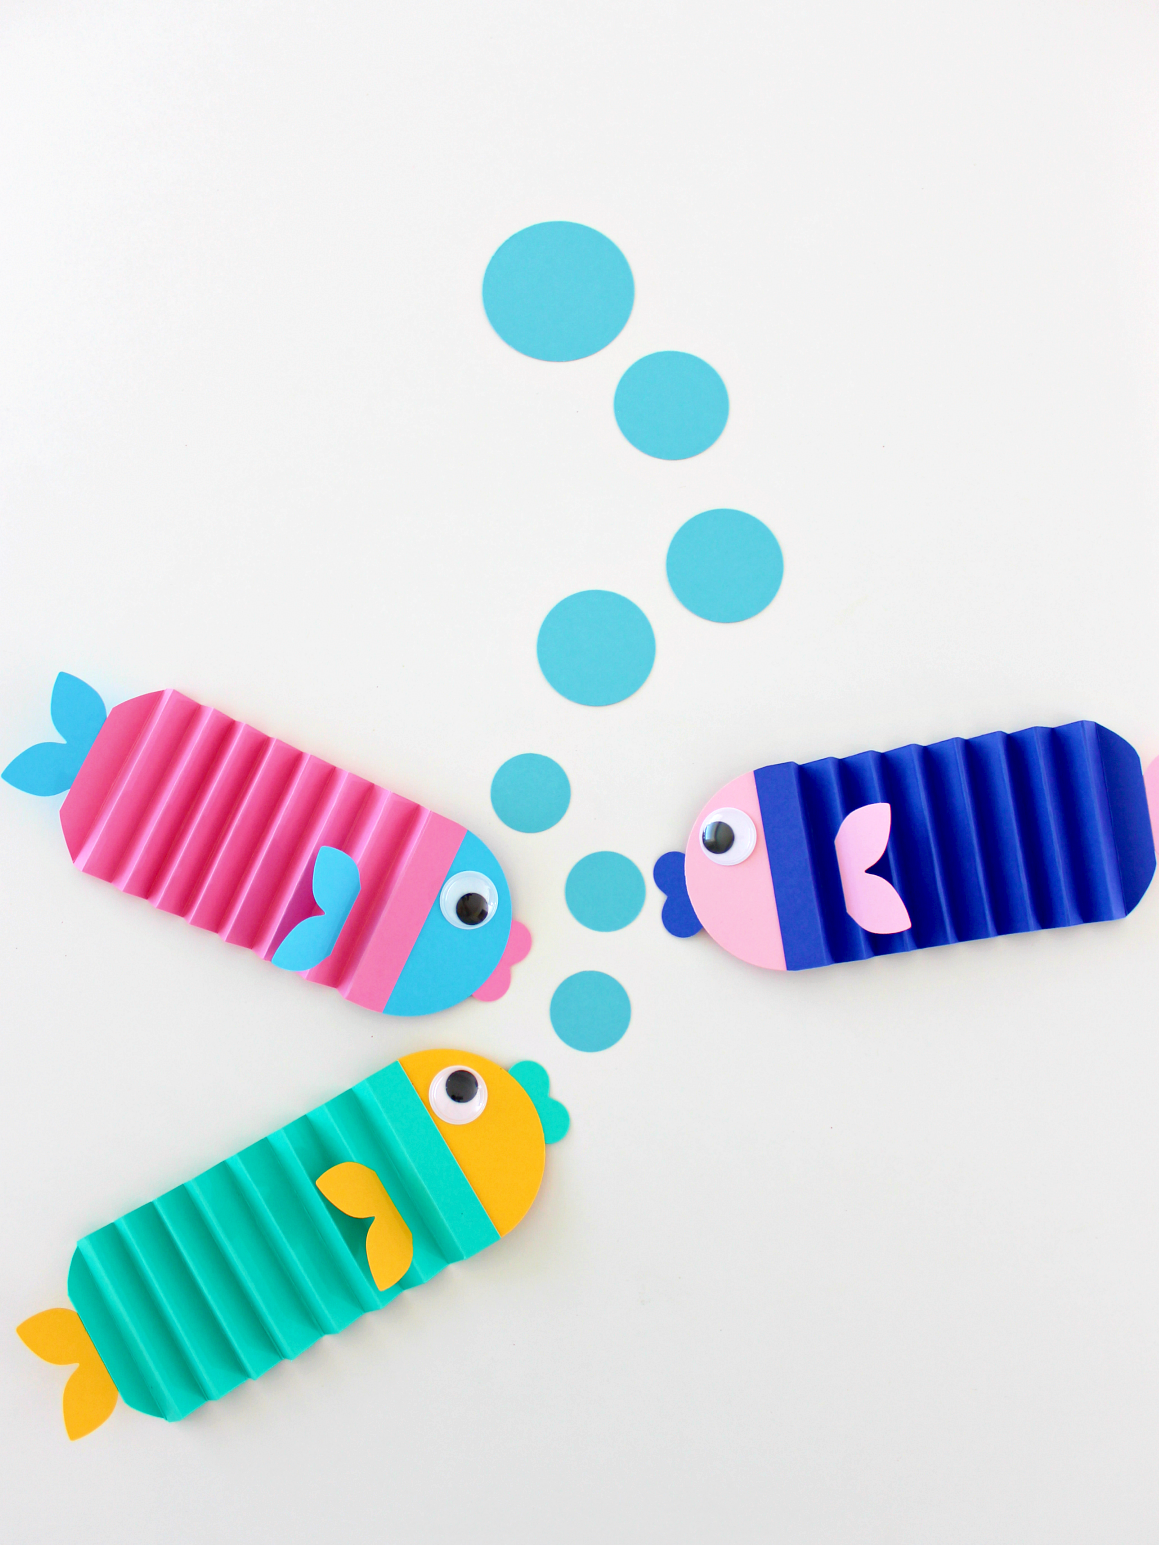 MAY PAPER CRAFT CHALLENGE DAY 13: ACCORDION FISH